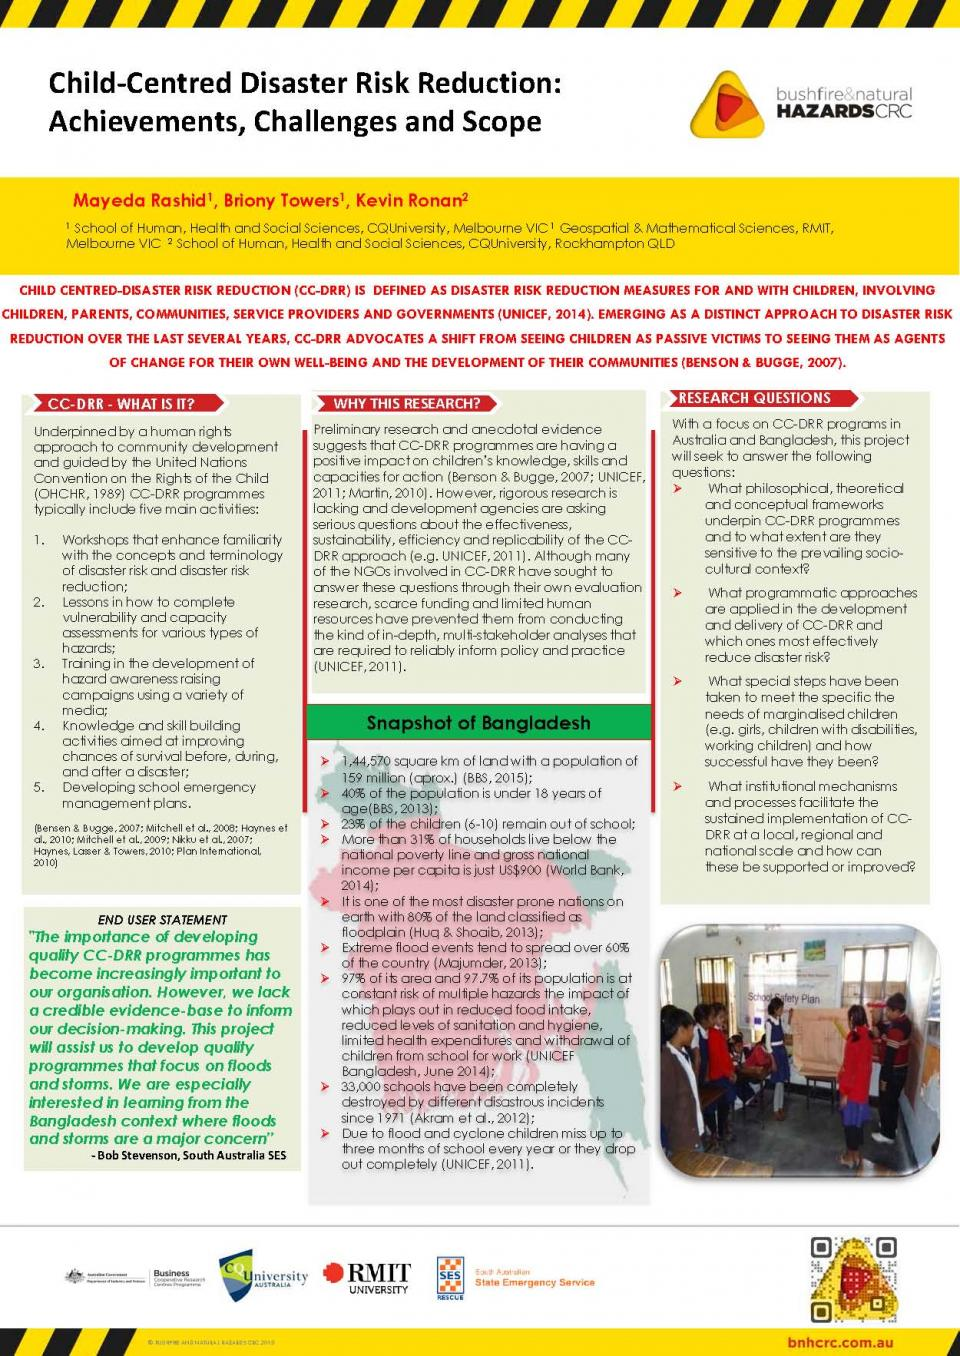 Child-Centred Disaster Risk Reduction: Achievements, Challenges, and Scope